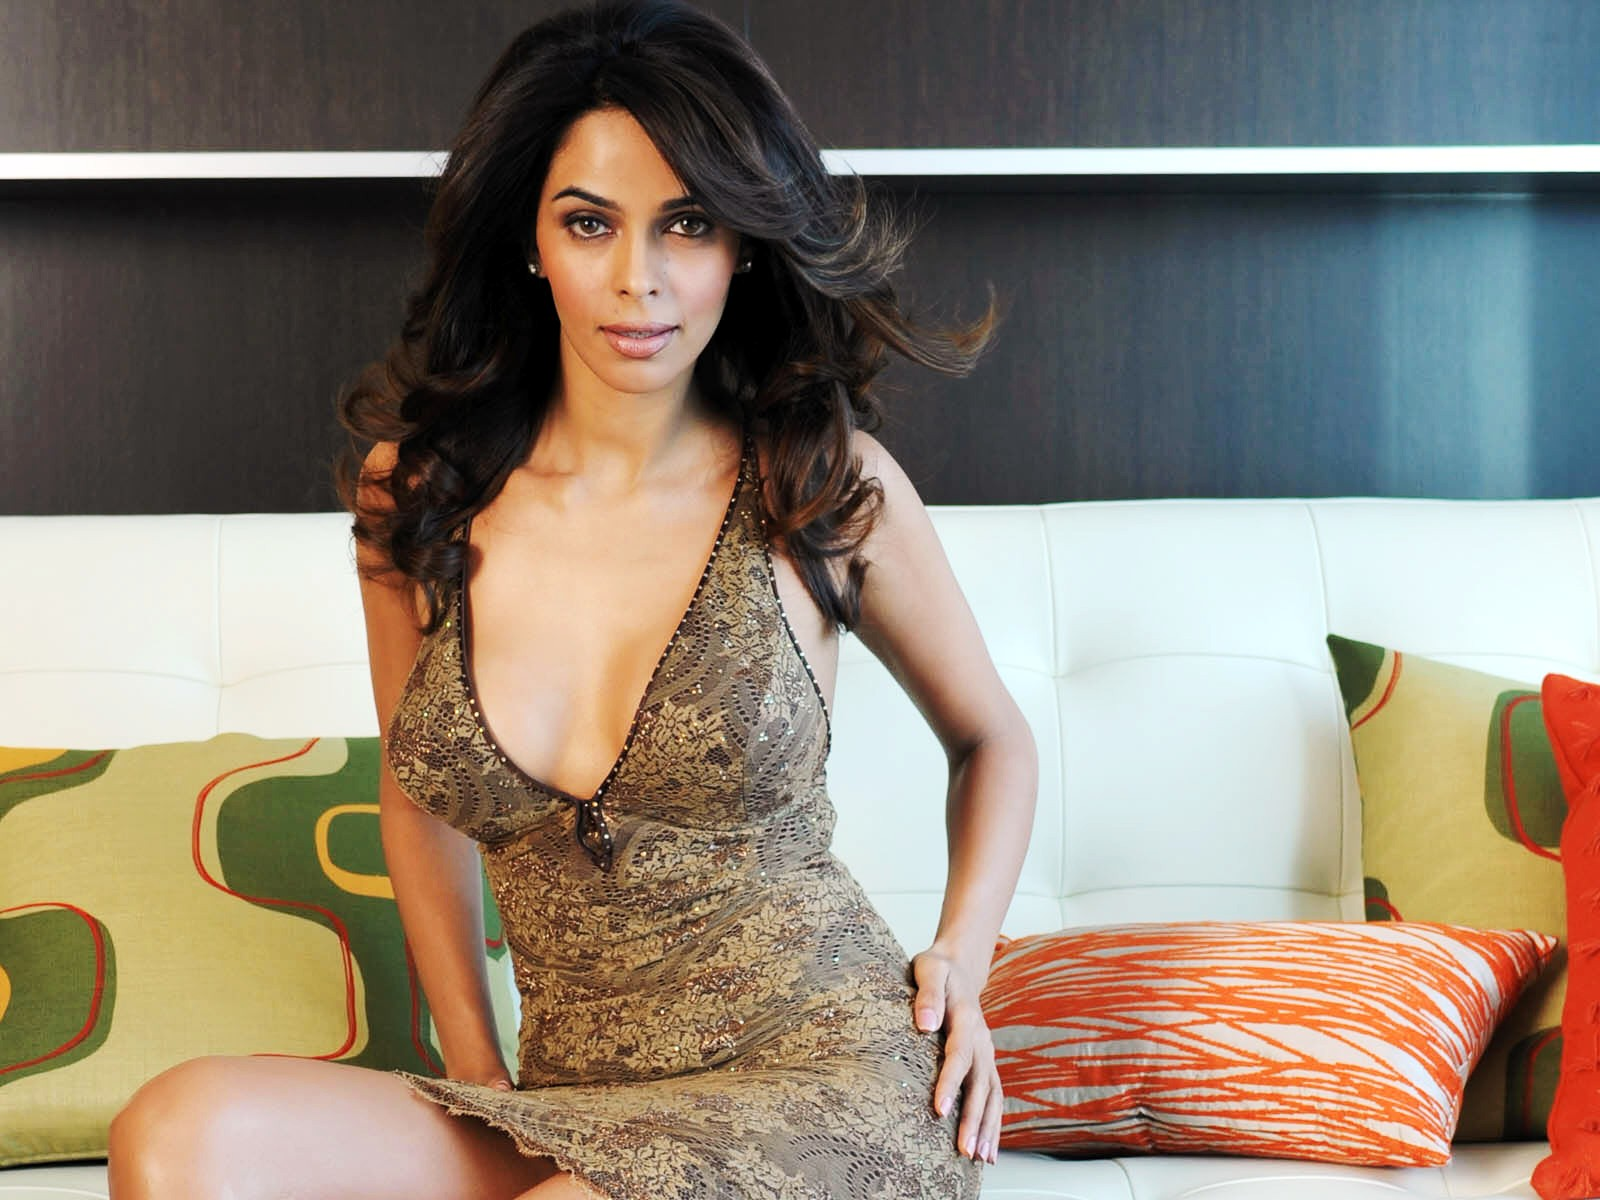 Mallika sherawat actress cute wallpaper